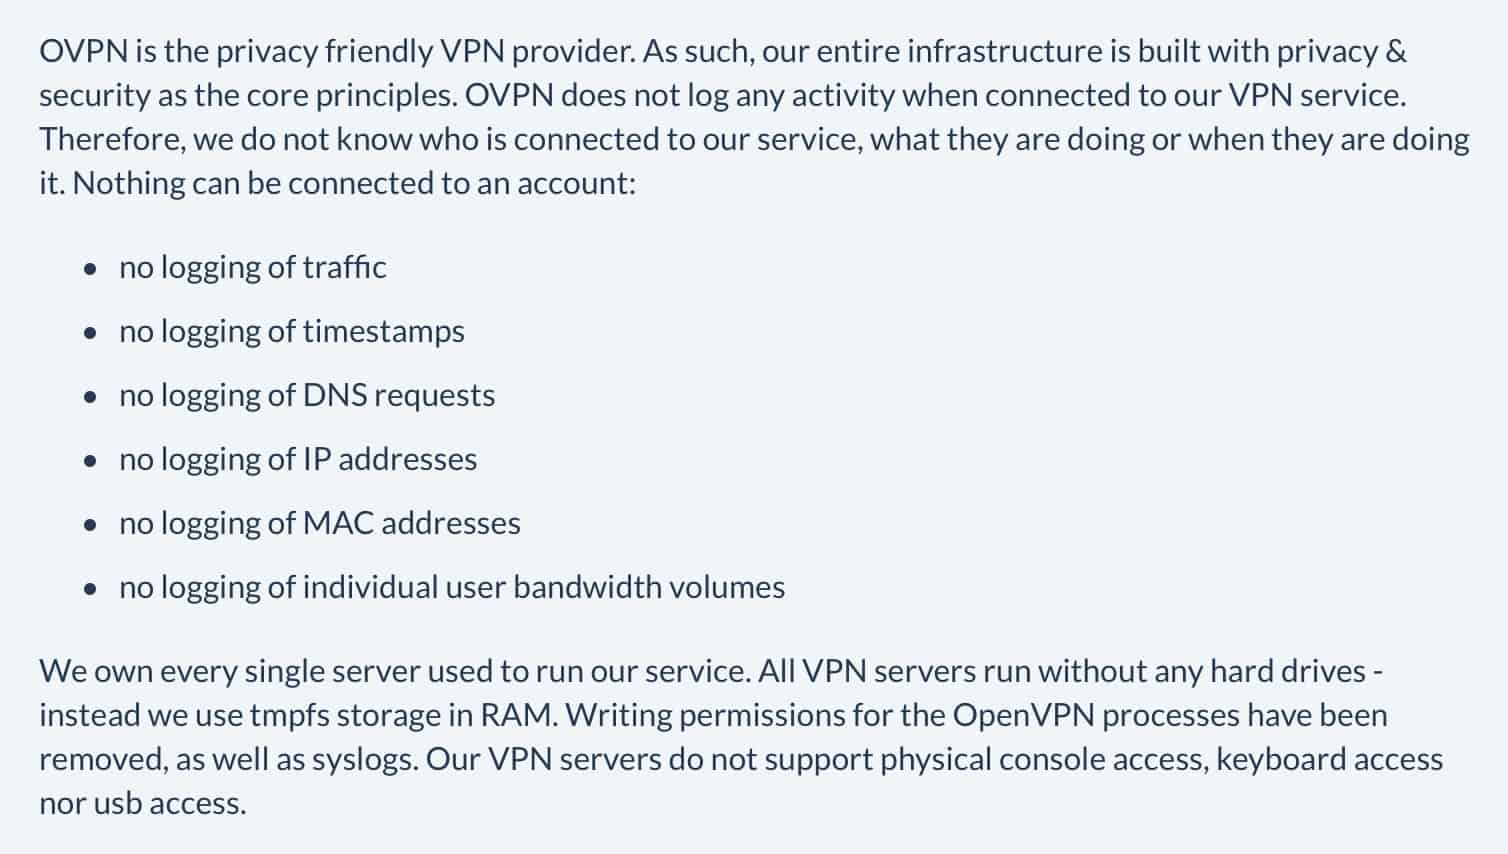 OVPN Privacy Policy